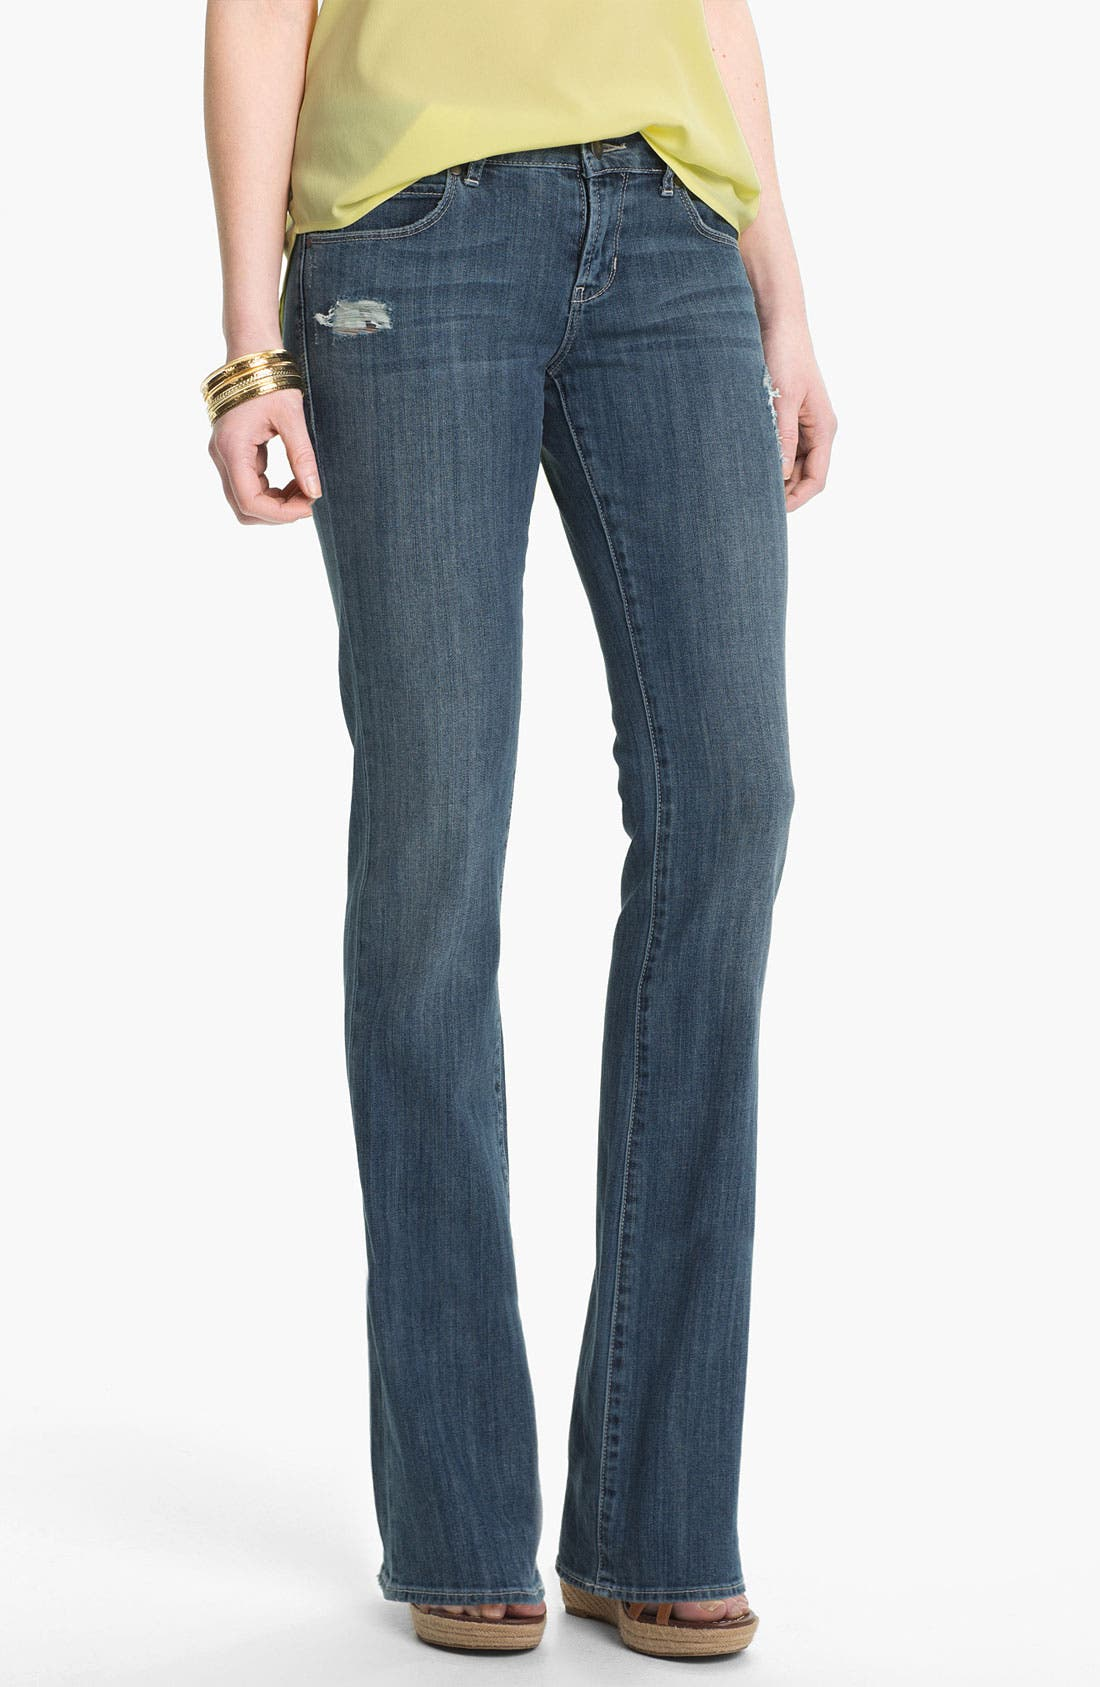 Alternate Image 1 Selected - Articles of Society 'Kendra' Bootcut Jeans (Worn) (Juniors)